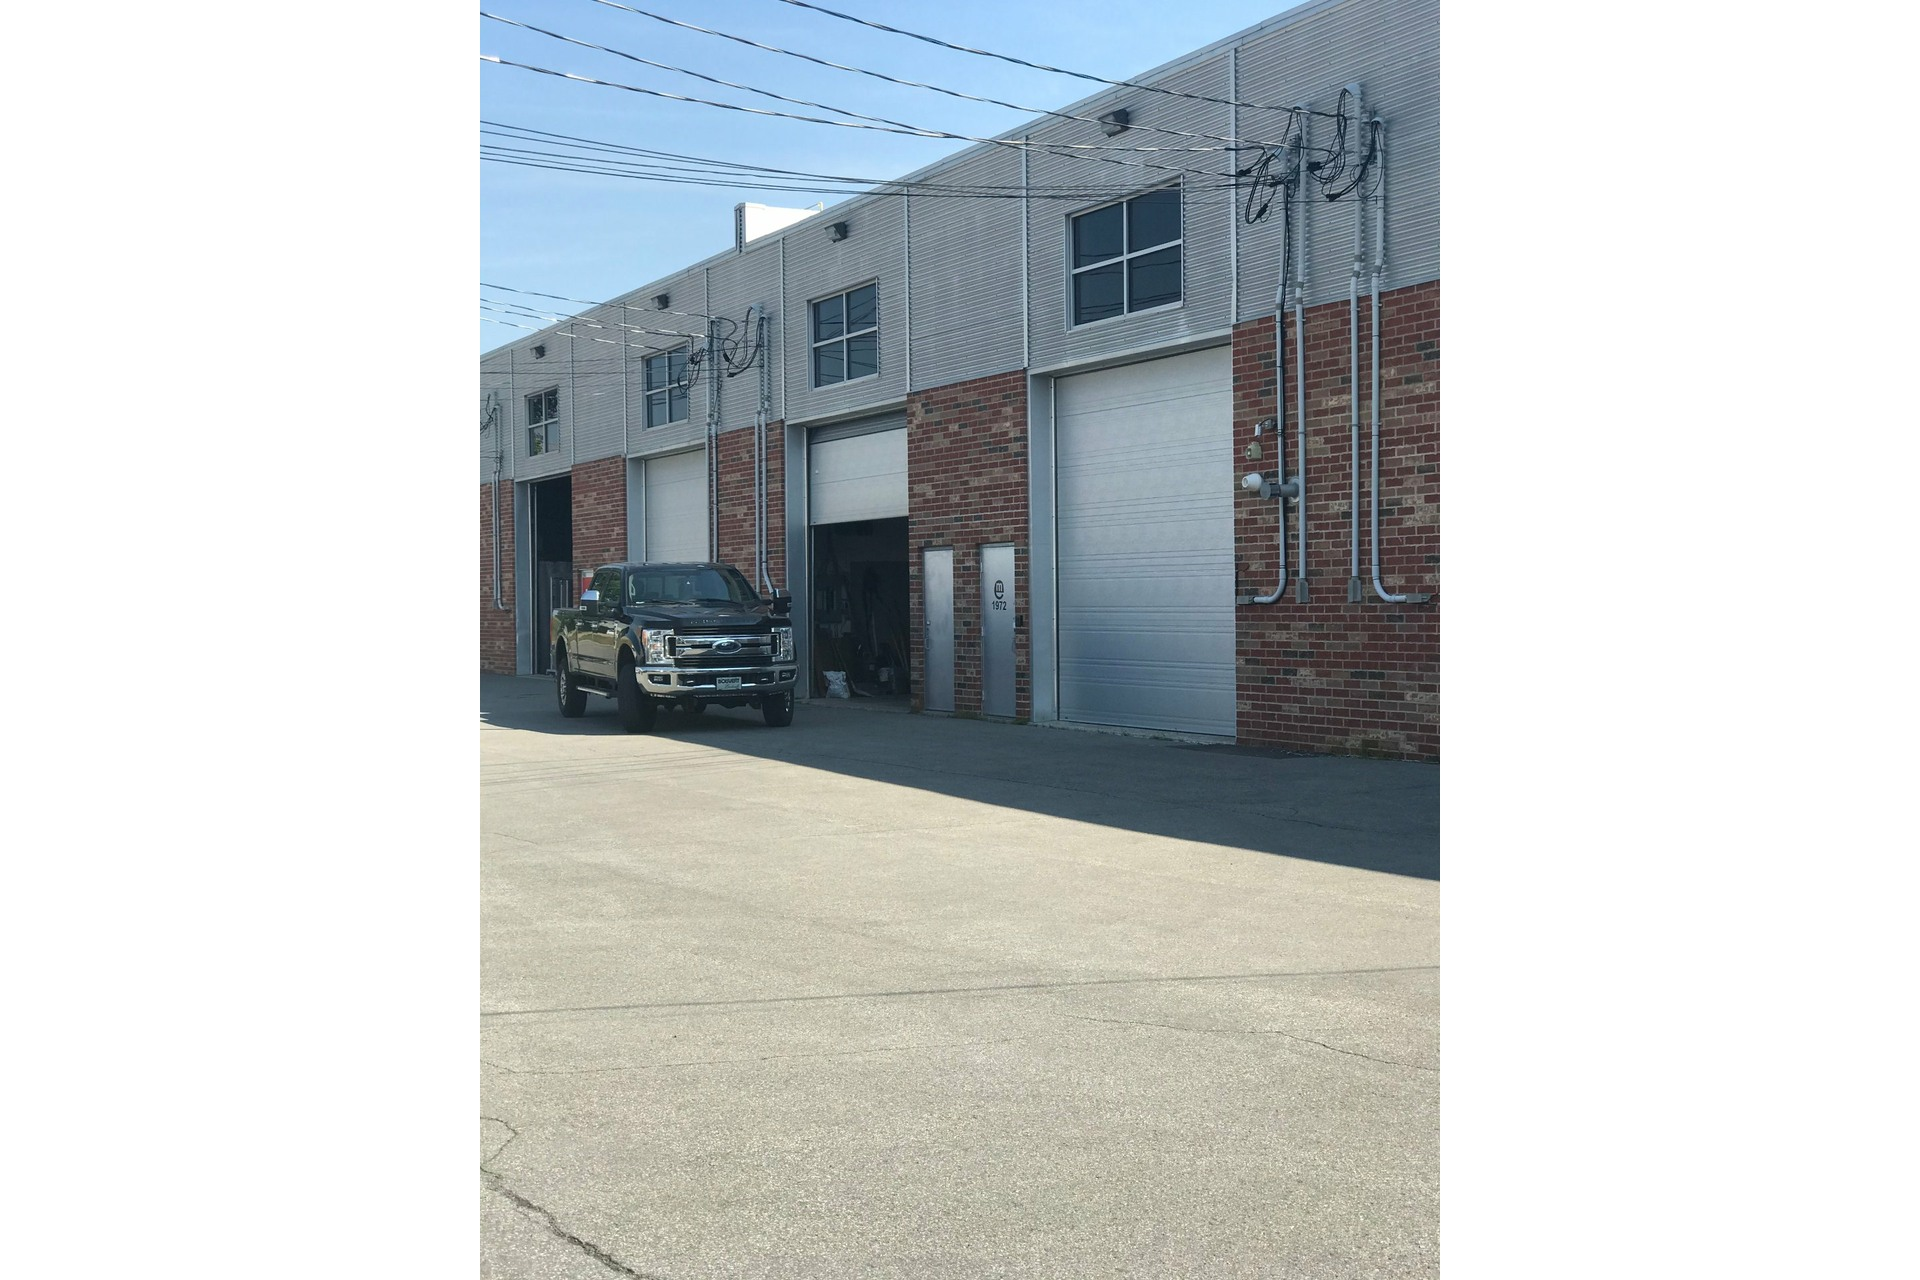 image 5 - Warehouse For sale Duvernay Laval